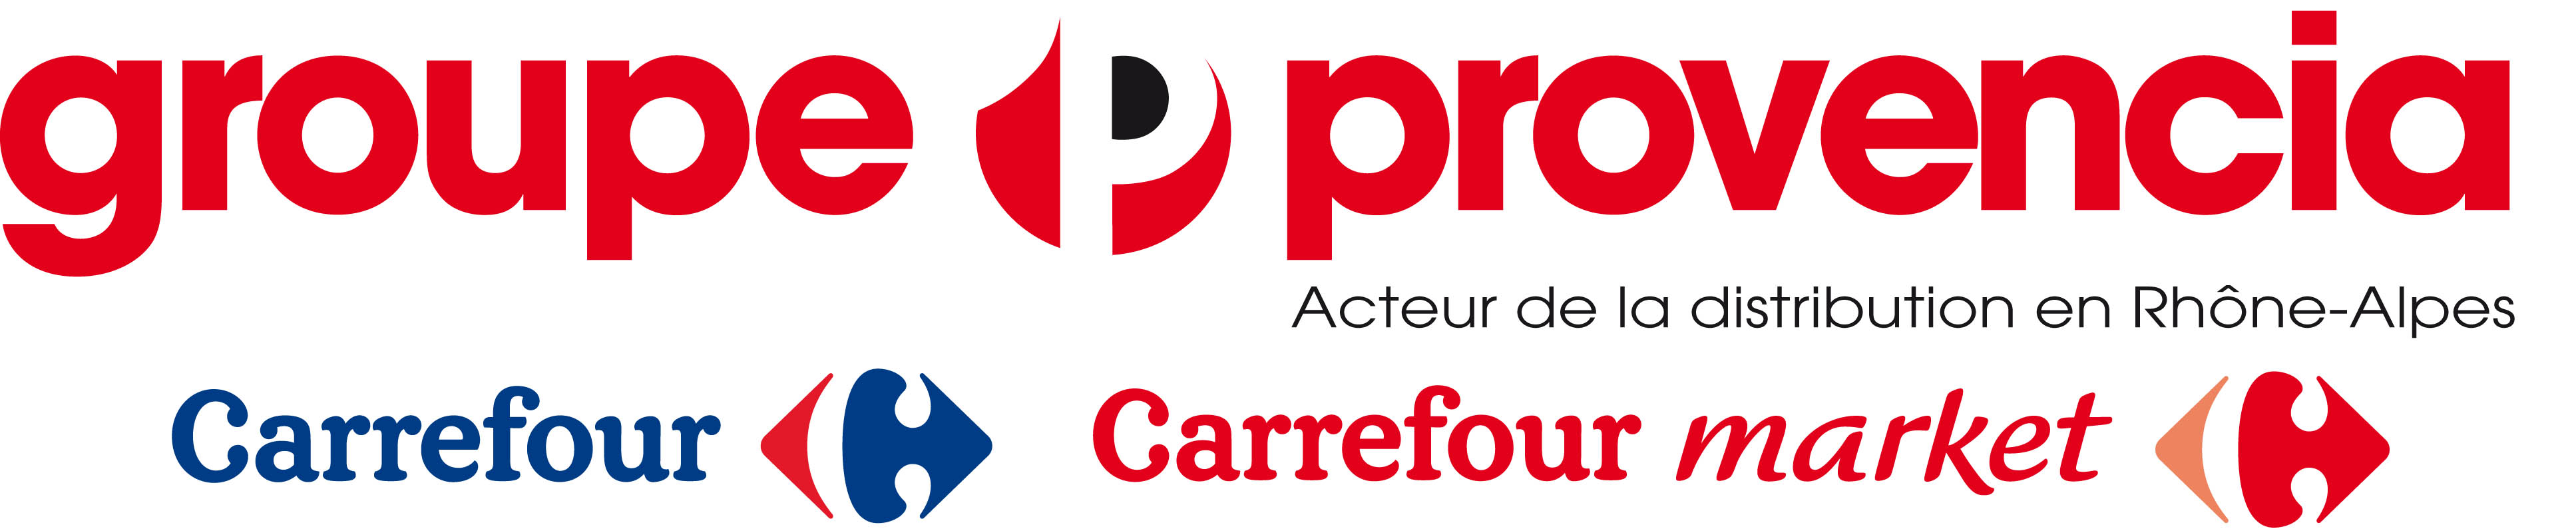 carrefour group The advertising arm of the carrefour group has consolidated data from disparate  sources to focus its ad investment.